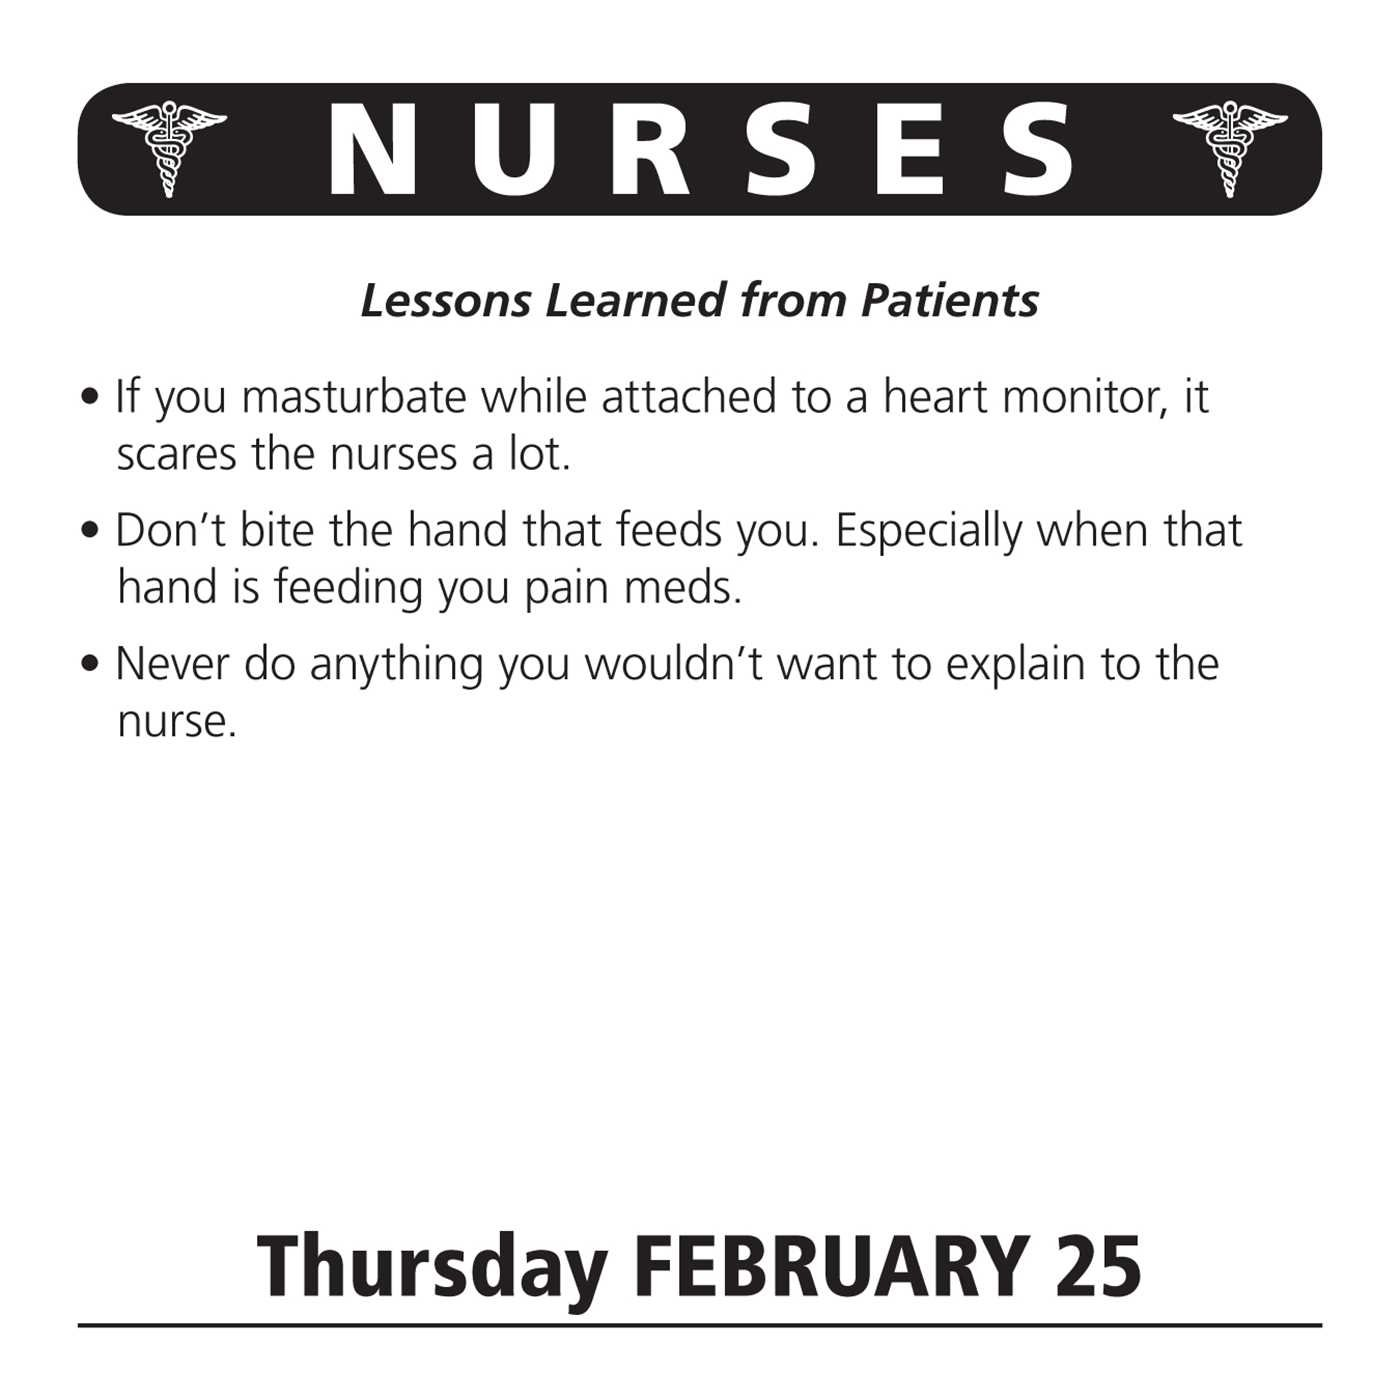 nurses day to day calendar jokes quotes and anecdotes nurses 2016 day to day calendar jokes quotes and anecdotes andrews mcmeel publishing llc 0050837342415 com books